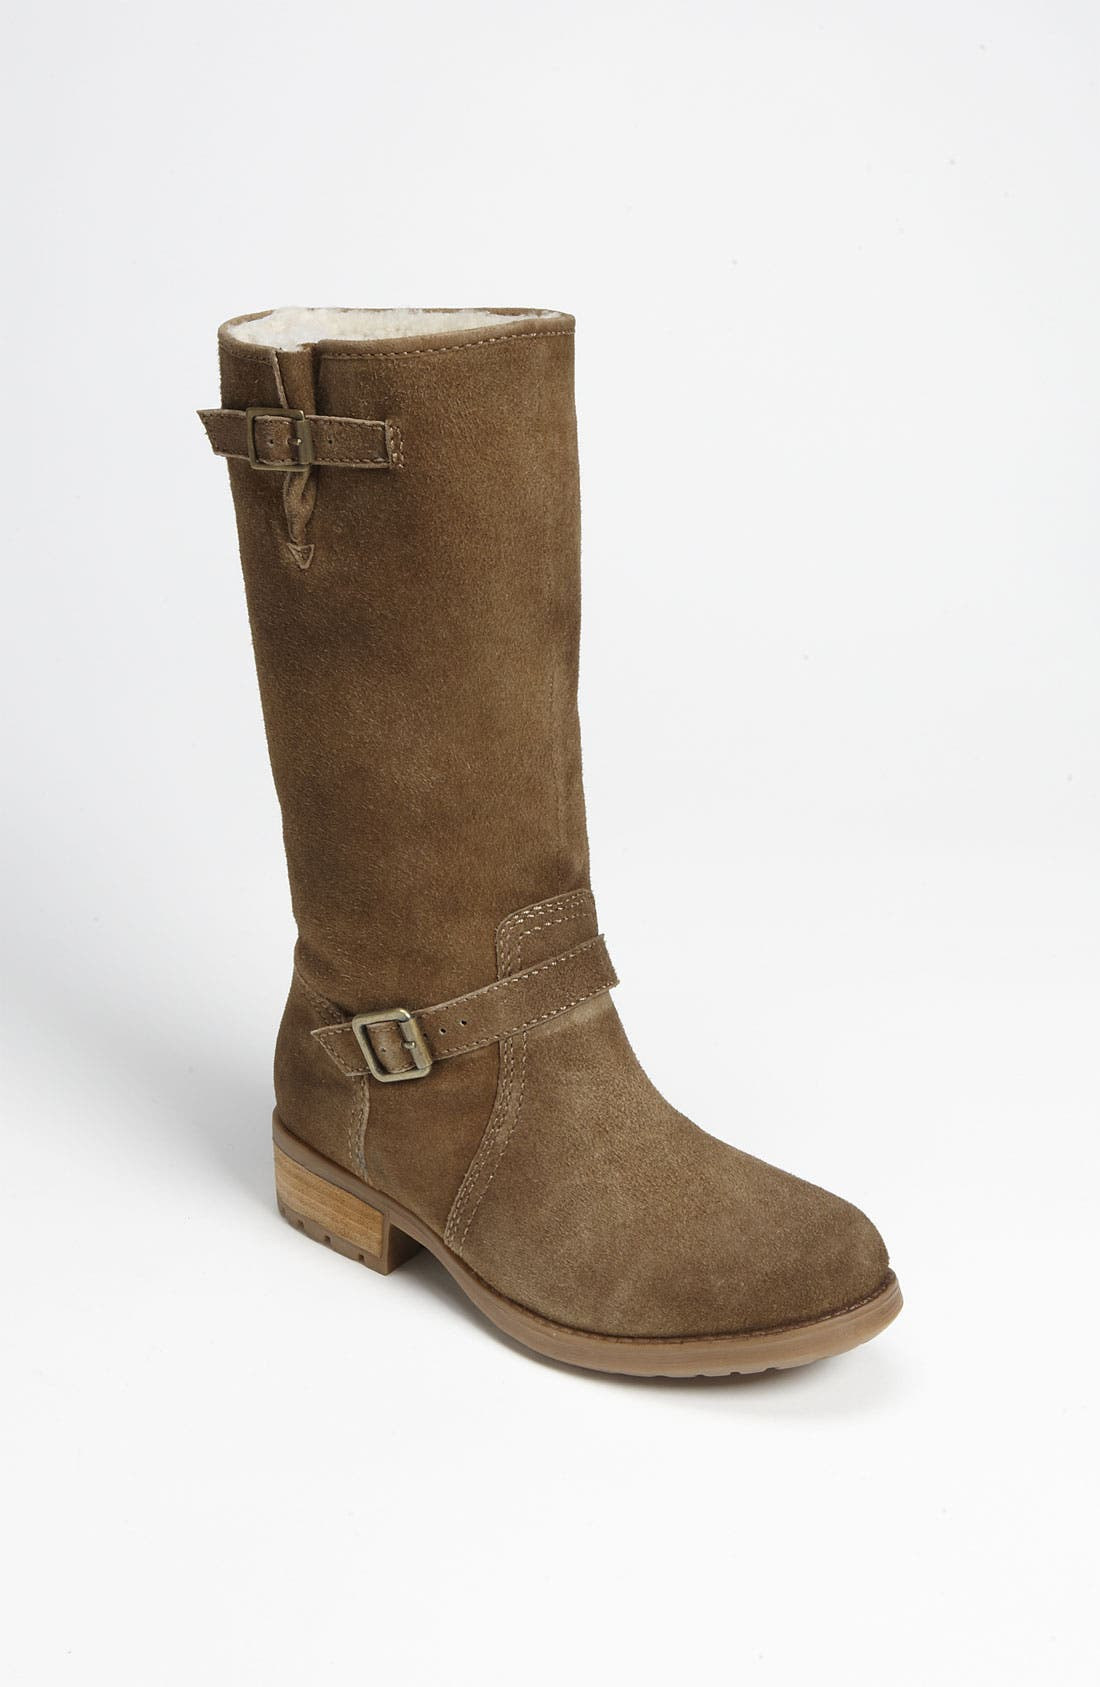 Alternate Image 1 Selected - 7 For All Mankind® 'Nova' Boot (Online Exclusive)